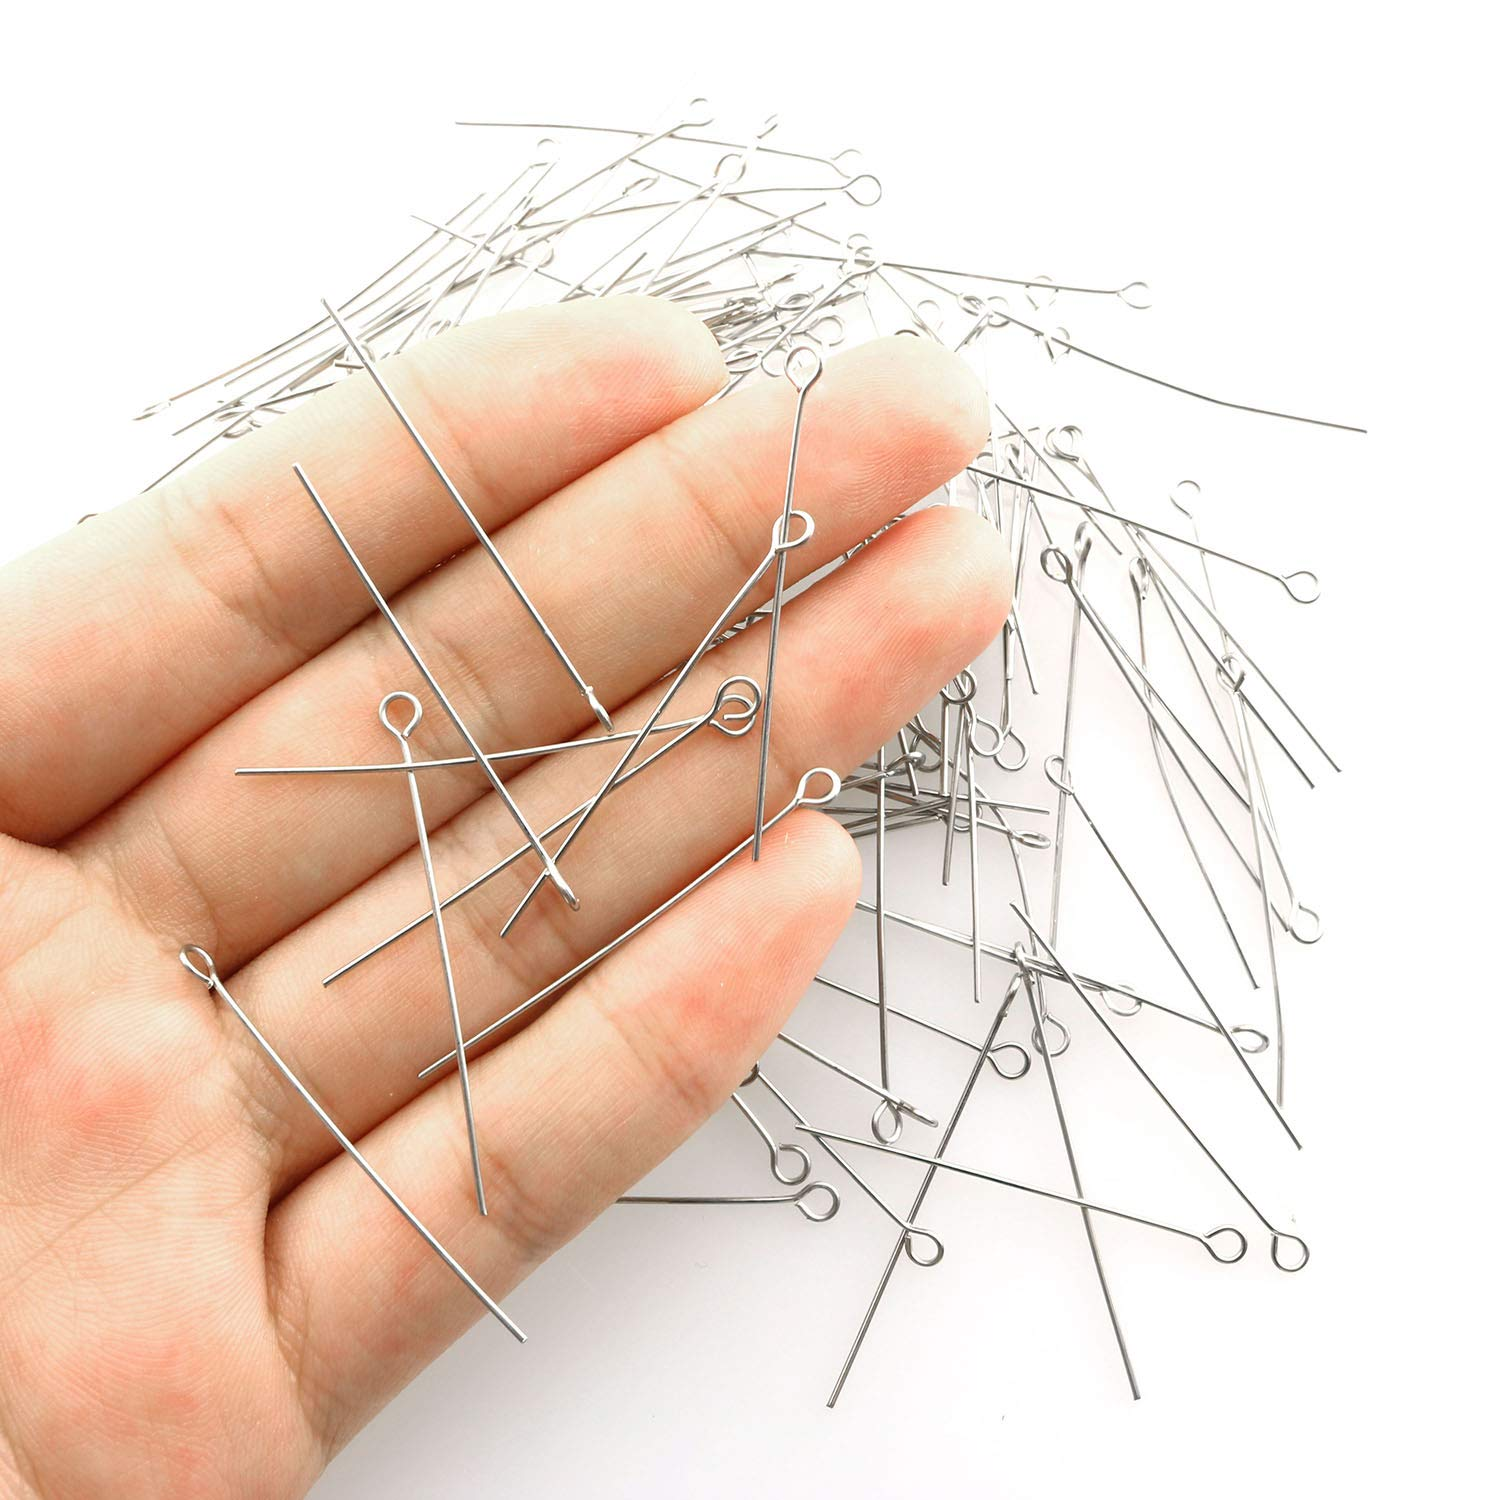 Tegg Eye Pin 200PCS 1.6inch//40mm 304 Stainless Steel Open Eyepins Headpins for Jewelry Necklace Making